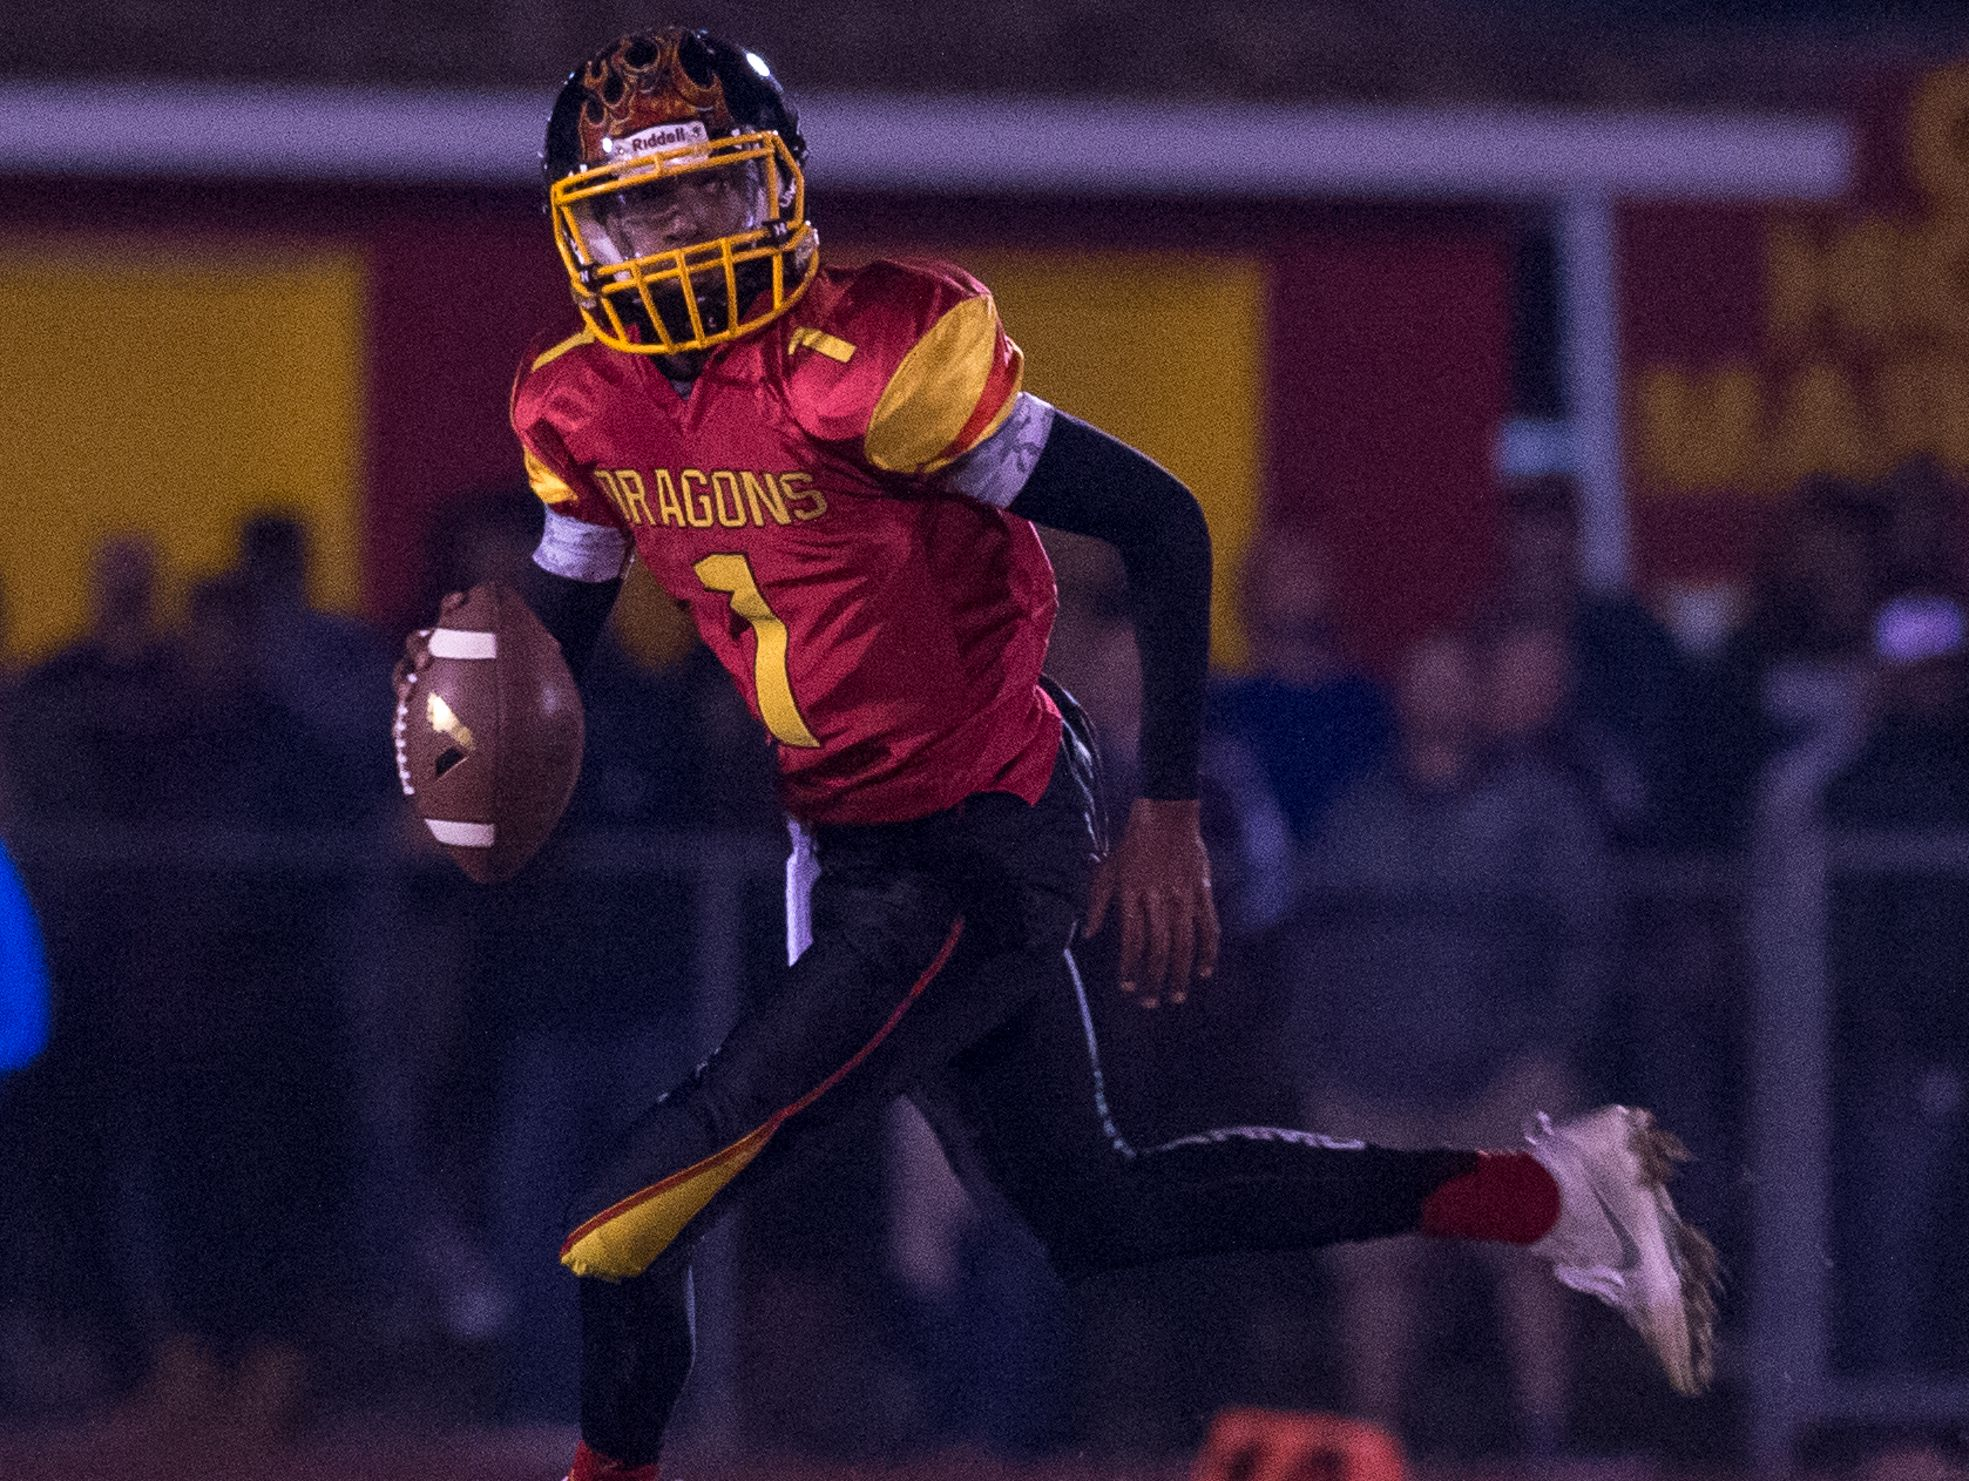 Glasgow's quarterback Isaiah Wilson (1) rolls out looking for a pass during the second quarter against Caravel in the first quarter against Glasgow in the opening round of the DIAA Division II playoffs at Glasgow High School.